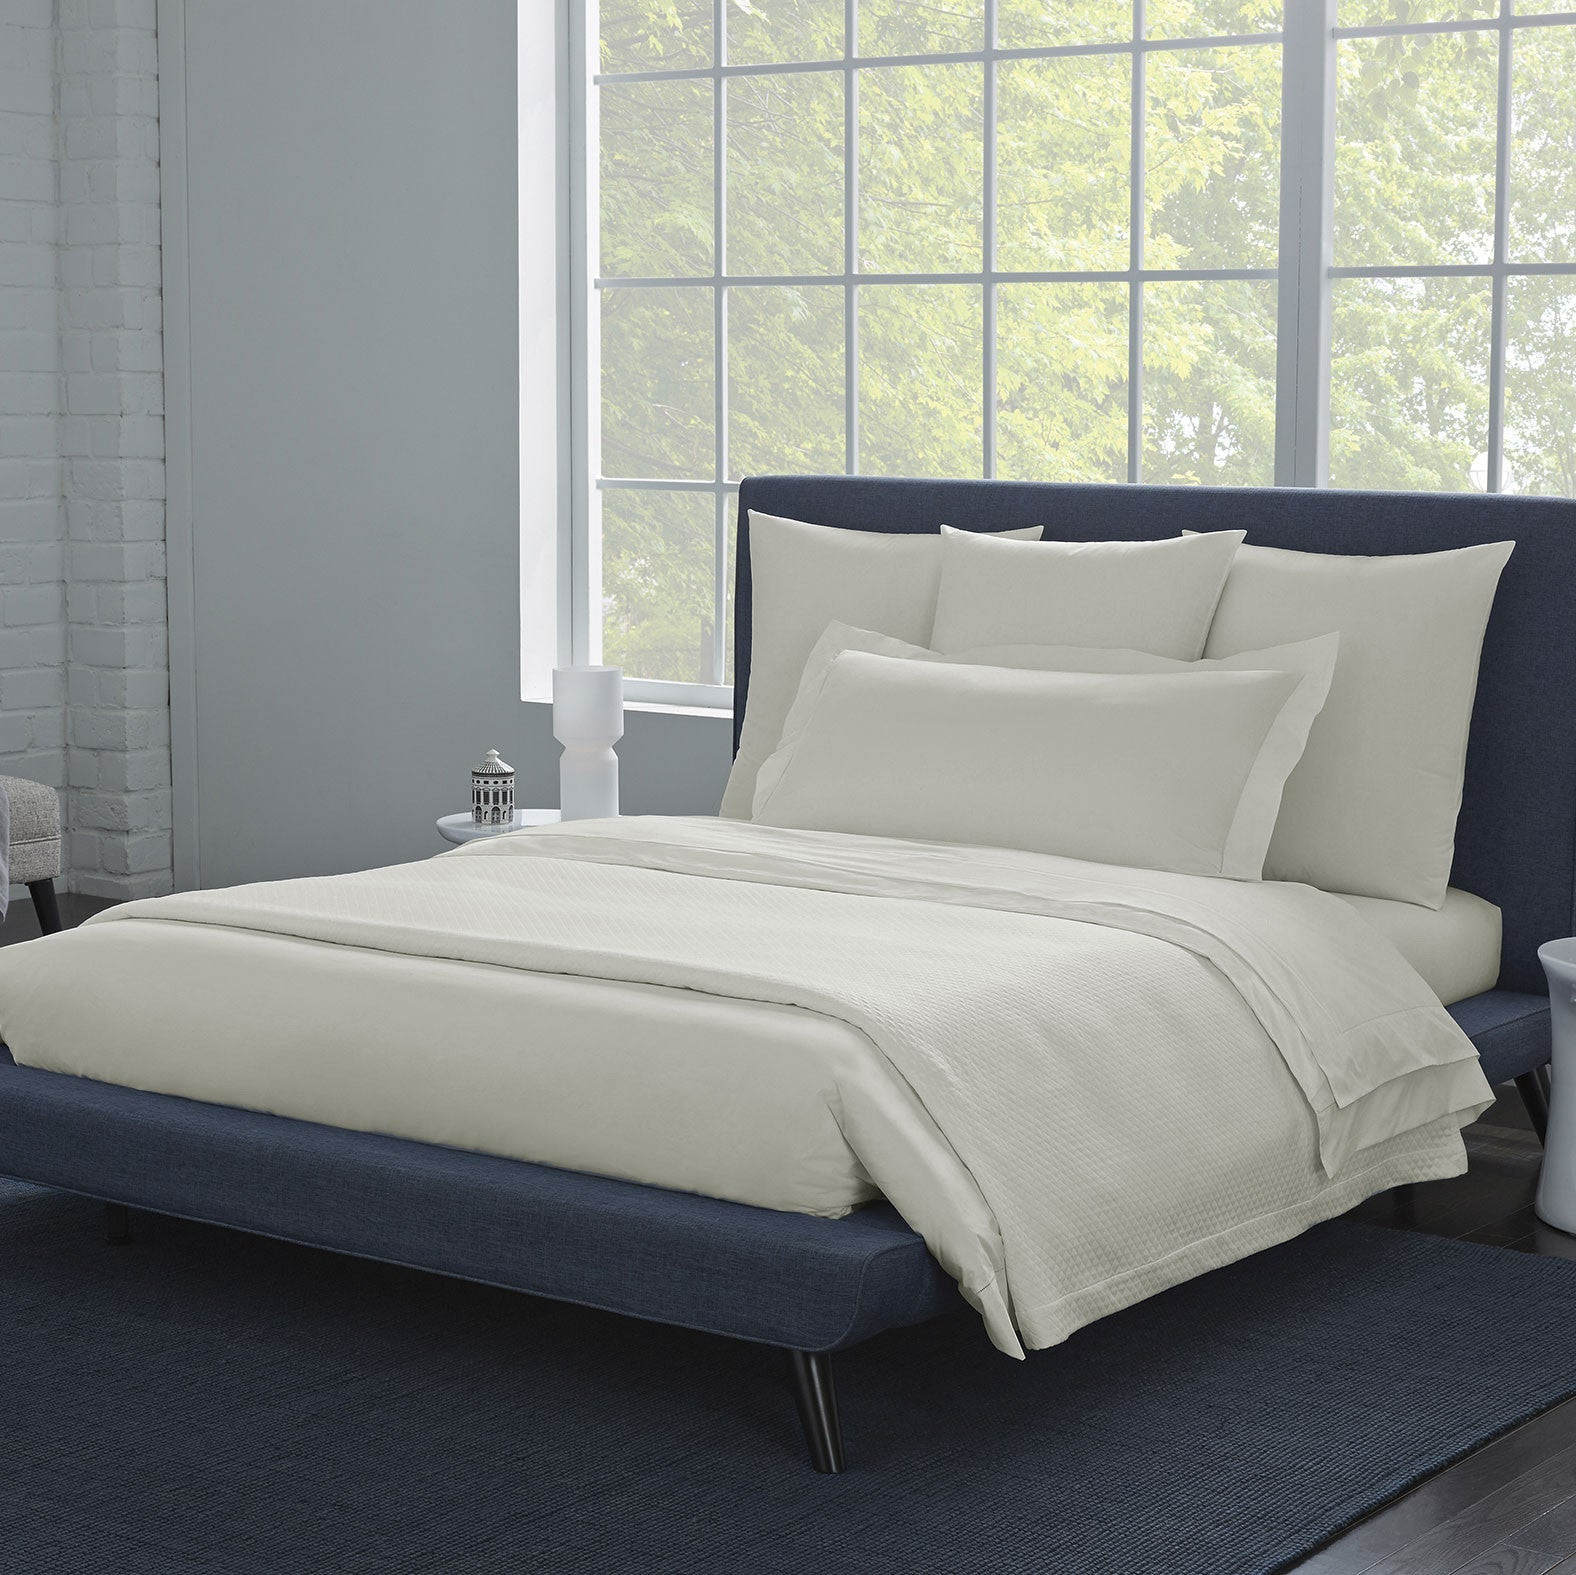 Sferra Celeste Ivory Sheets Free Shipping And Color